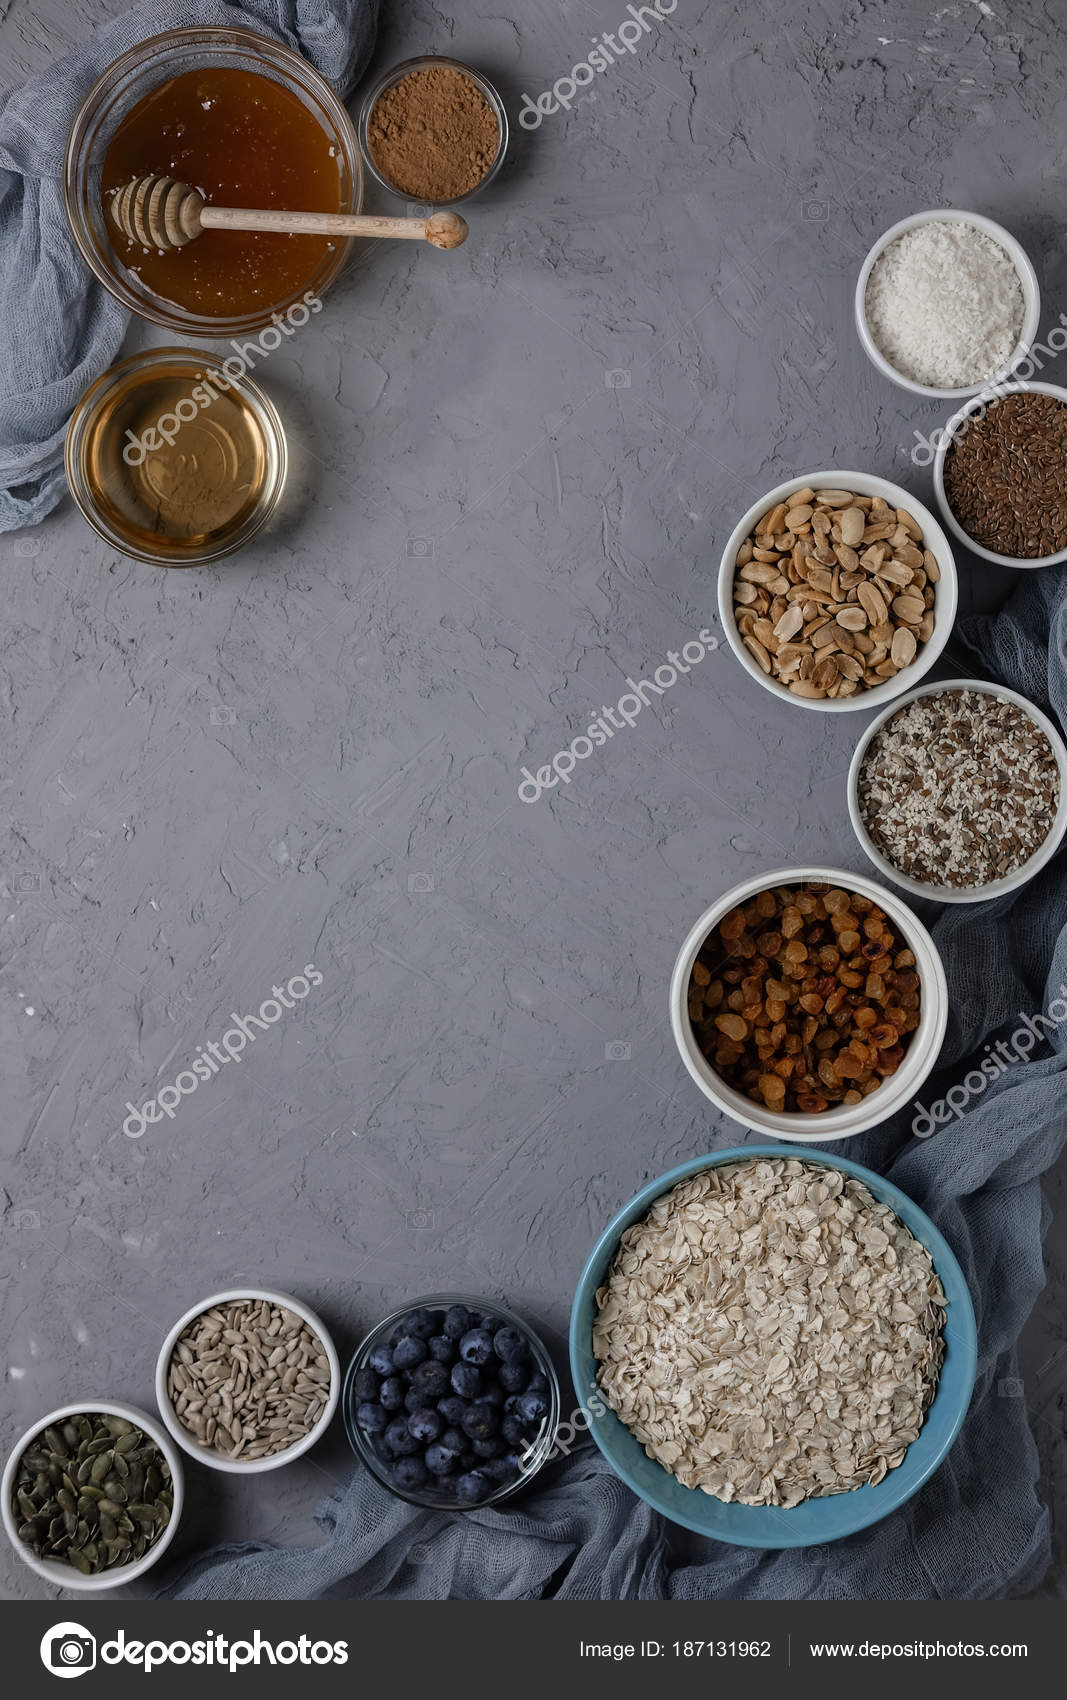 Ingredients for cooking homemade granola: oatmeal, raisins, coconut